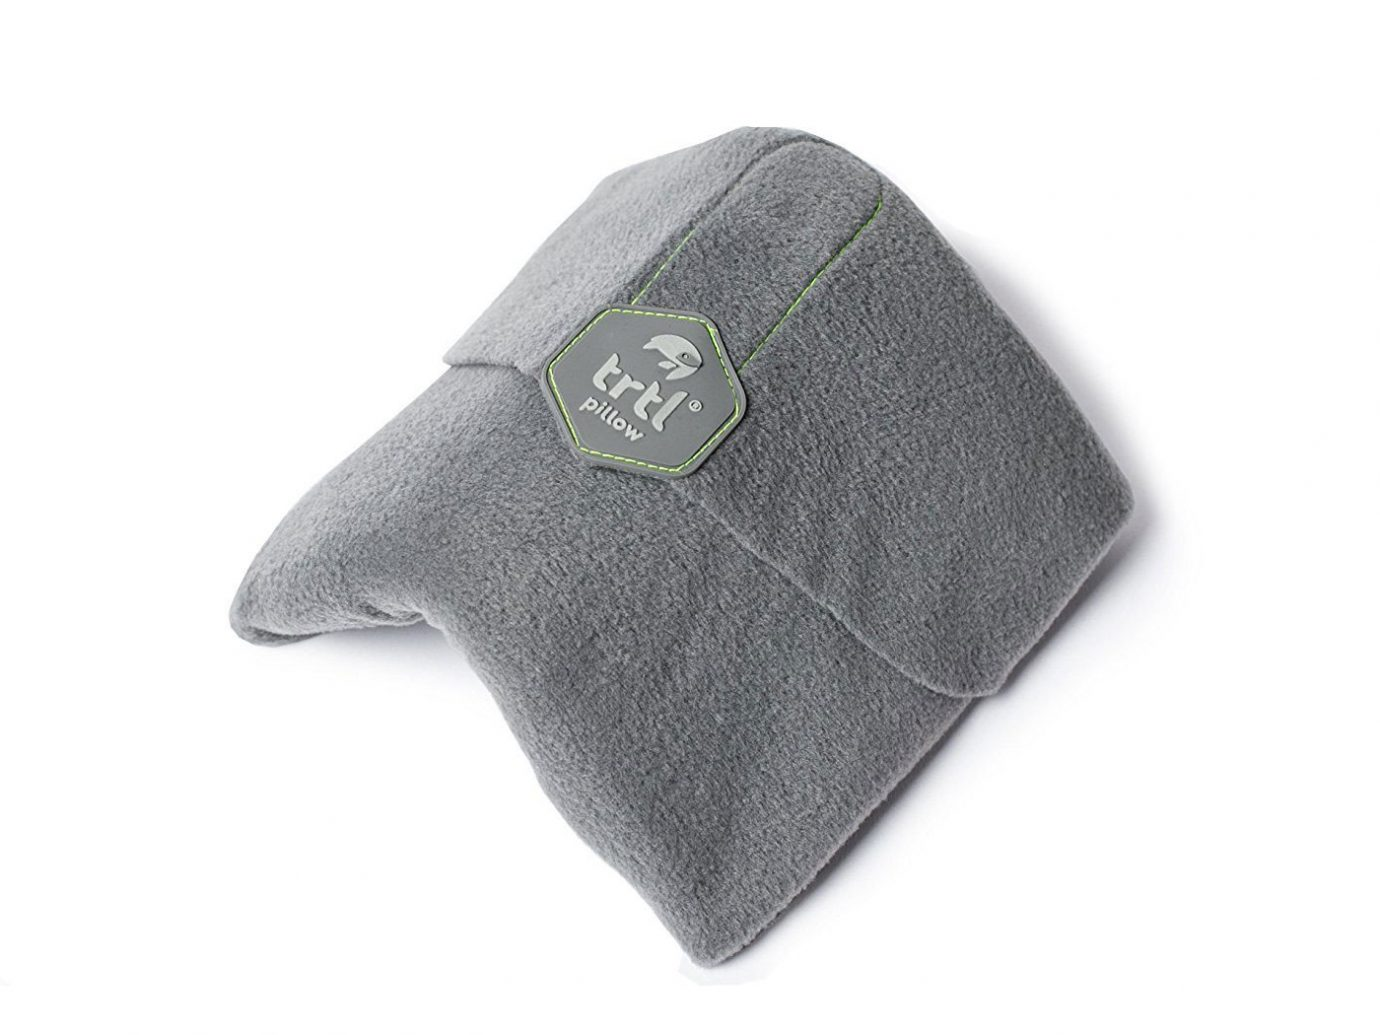 Trtl Pillow grey